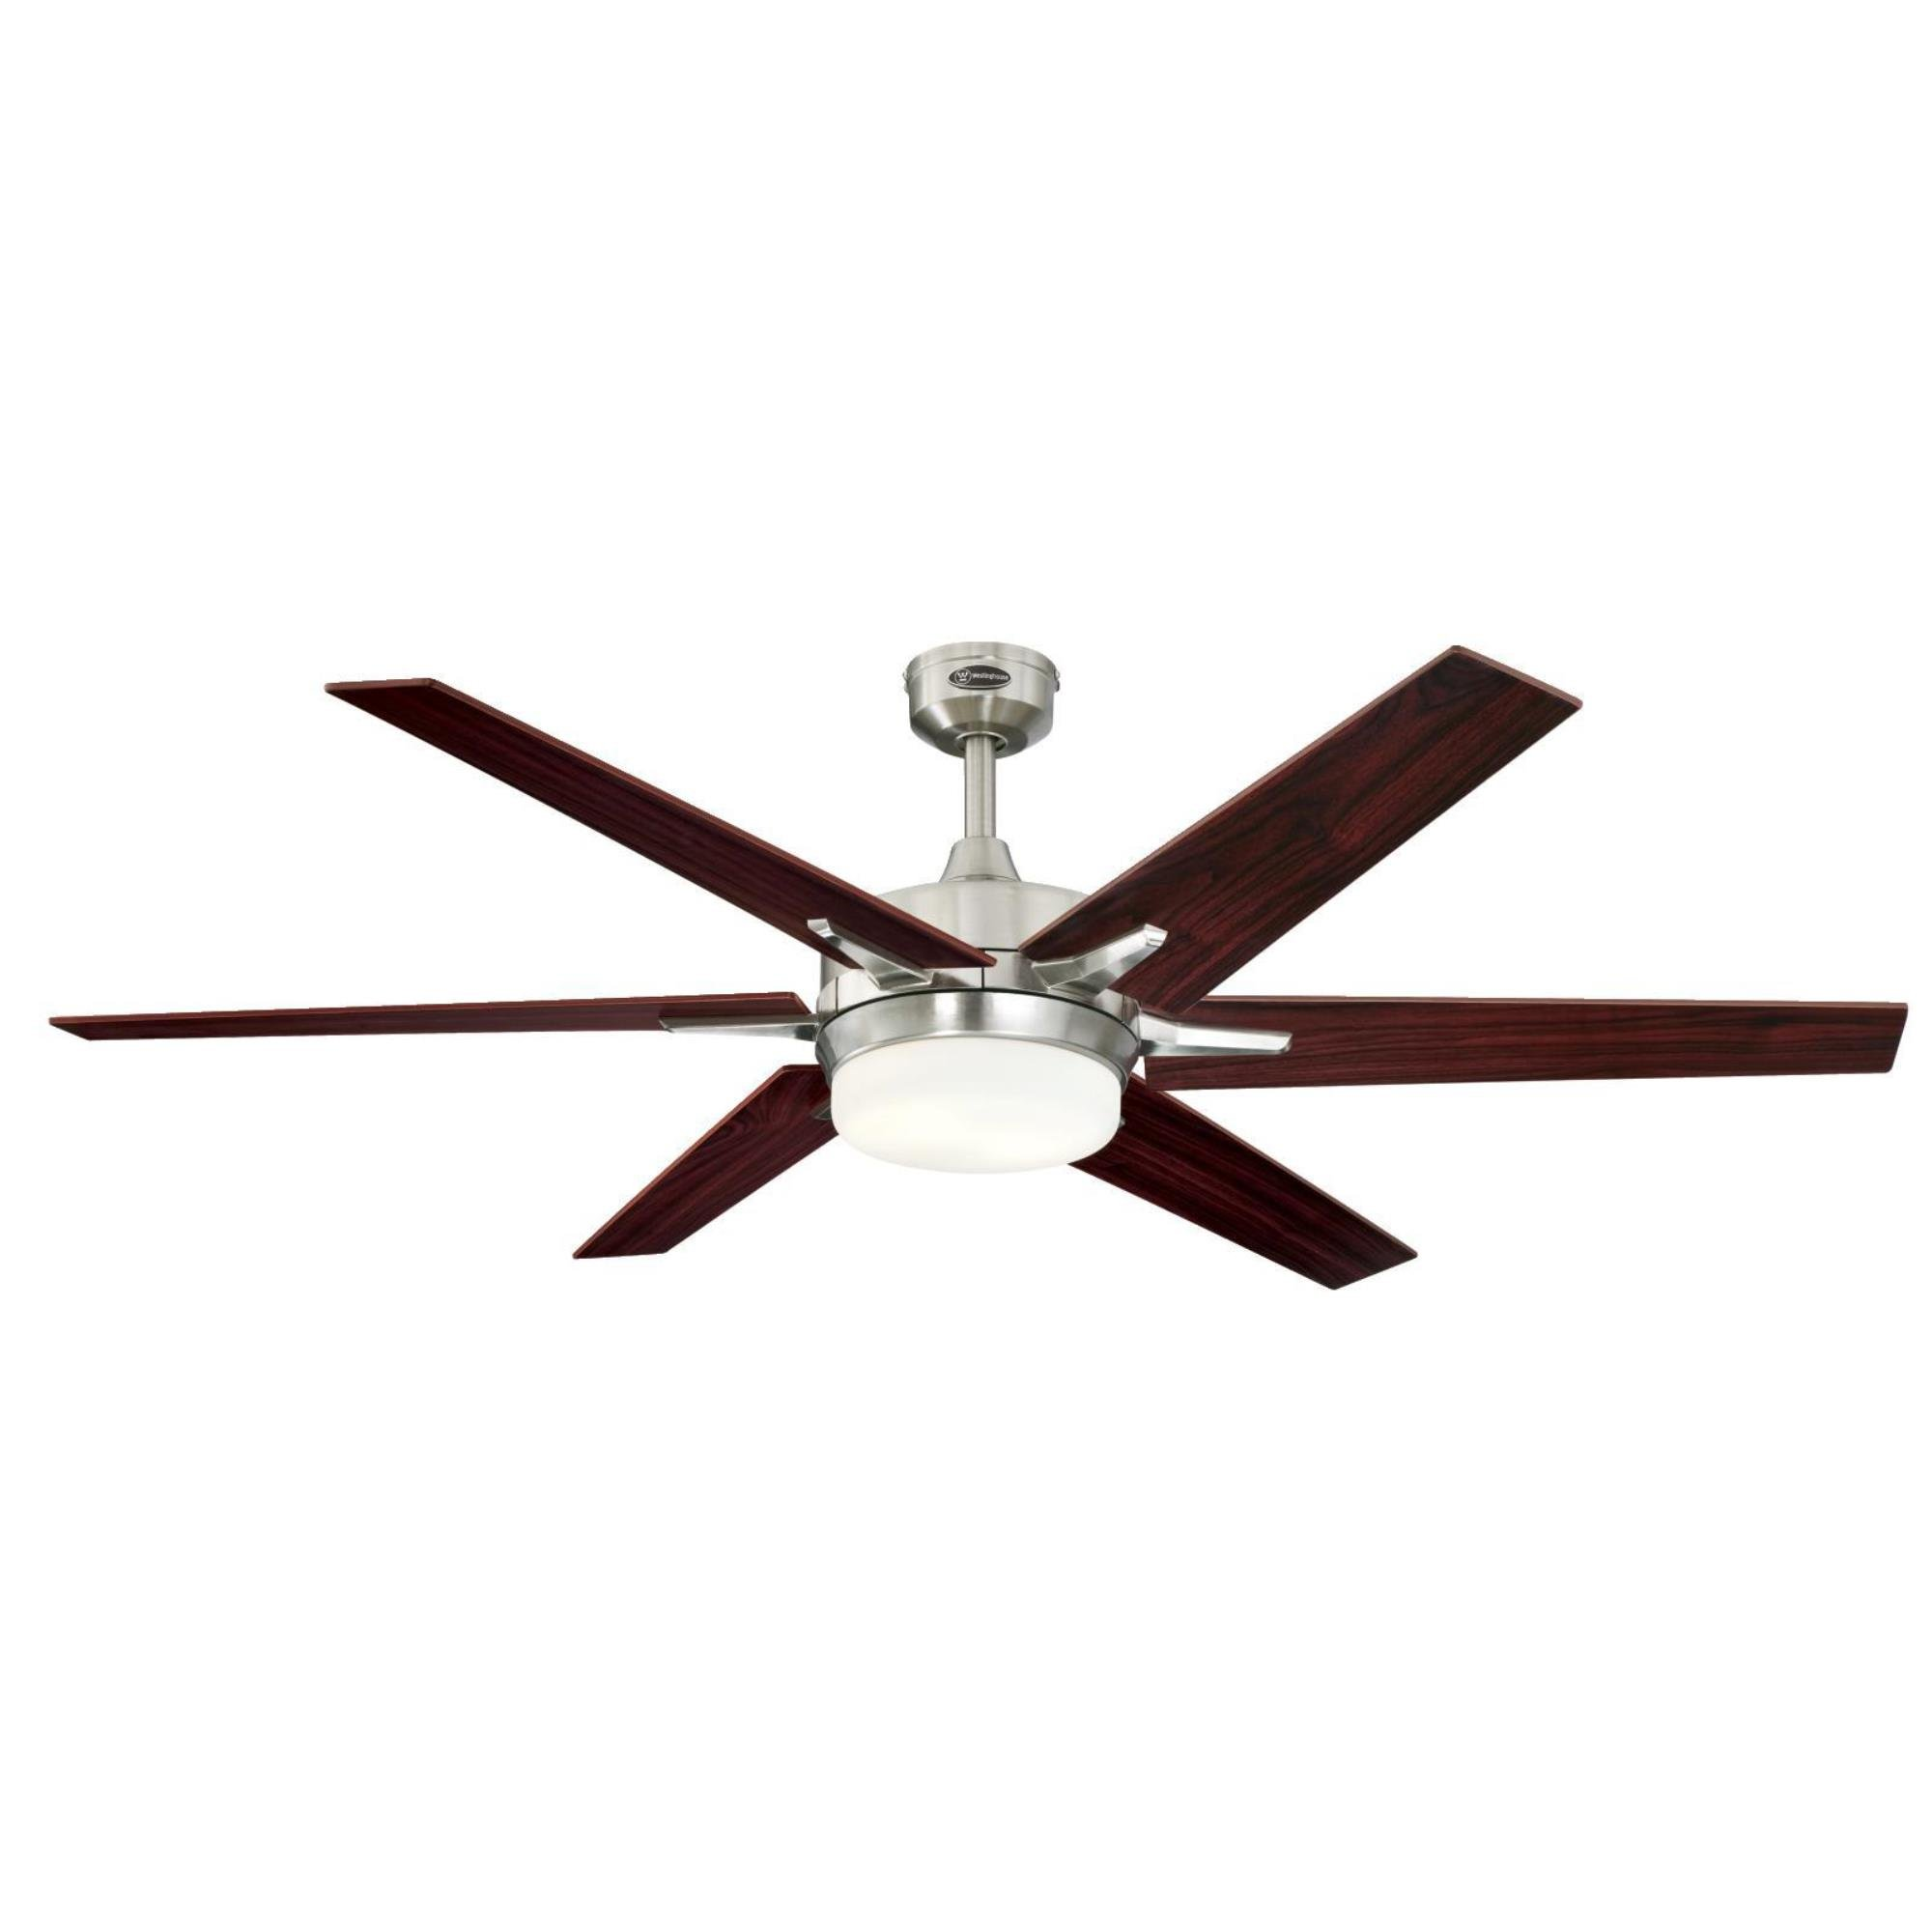 Westinghouse Lighting 7752600 Ceiling Fan Down Rod 12 Inch Brushed Nickel Finish 3//4 Inch Diameter